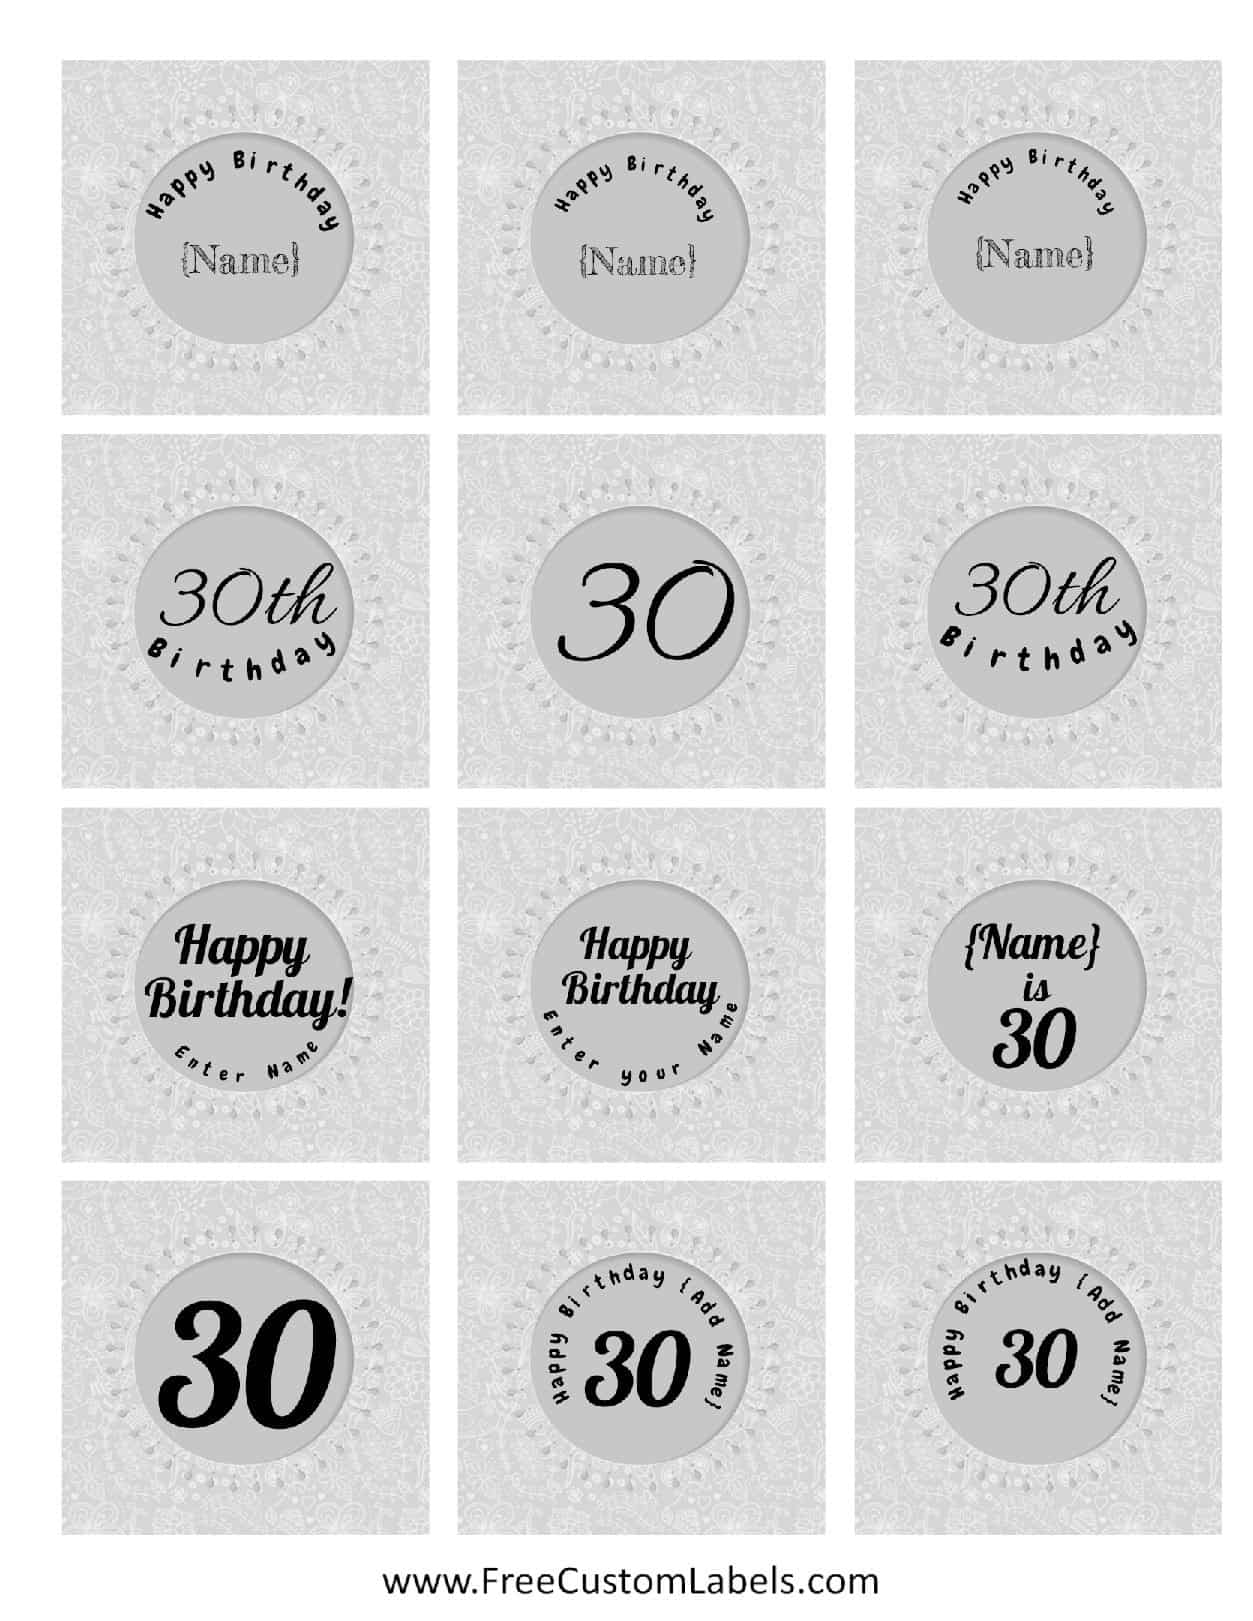 online labels template